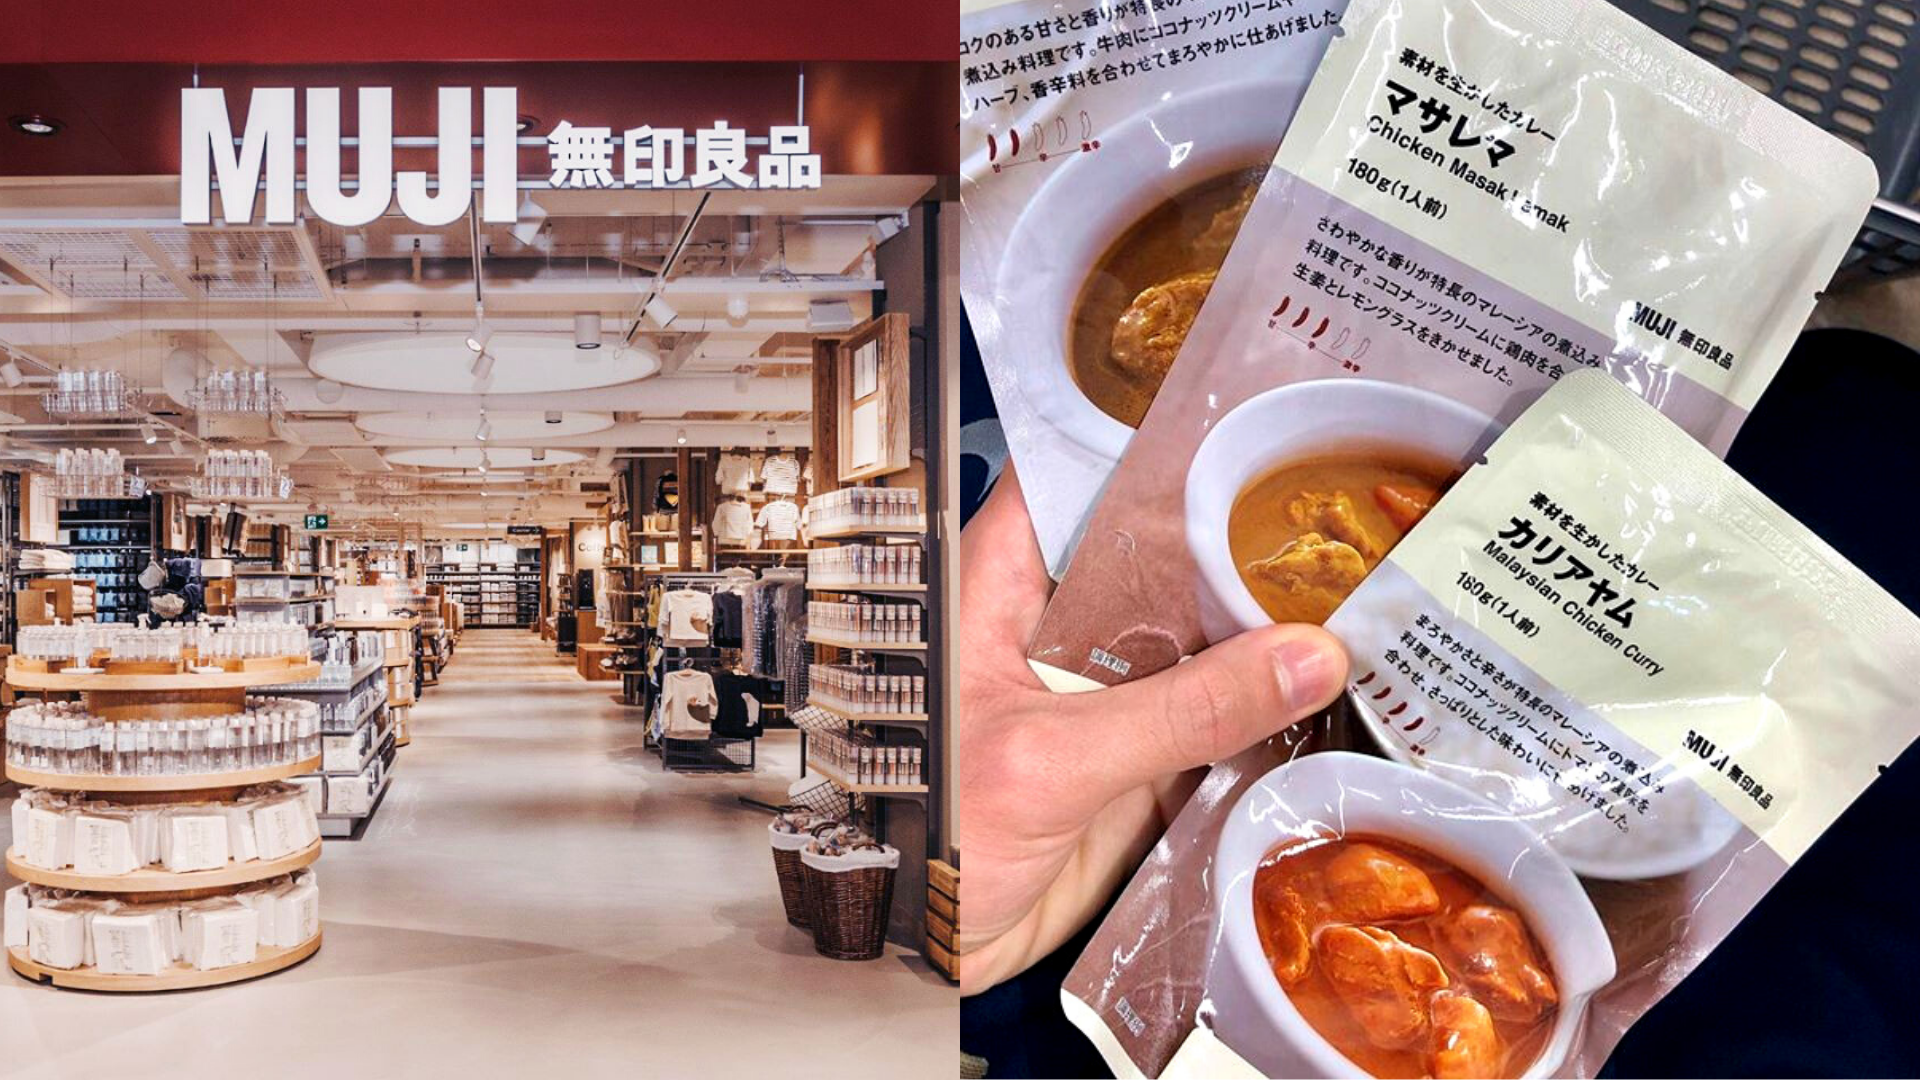 You Can Now Get Halal Kari Ayam And Beef Rendang At Over 400 Muji Stores In Japan!